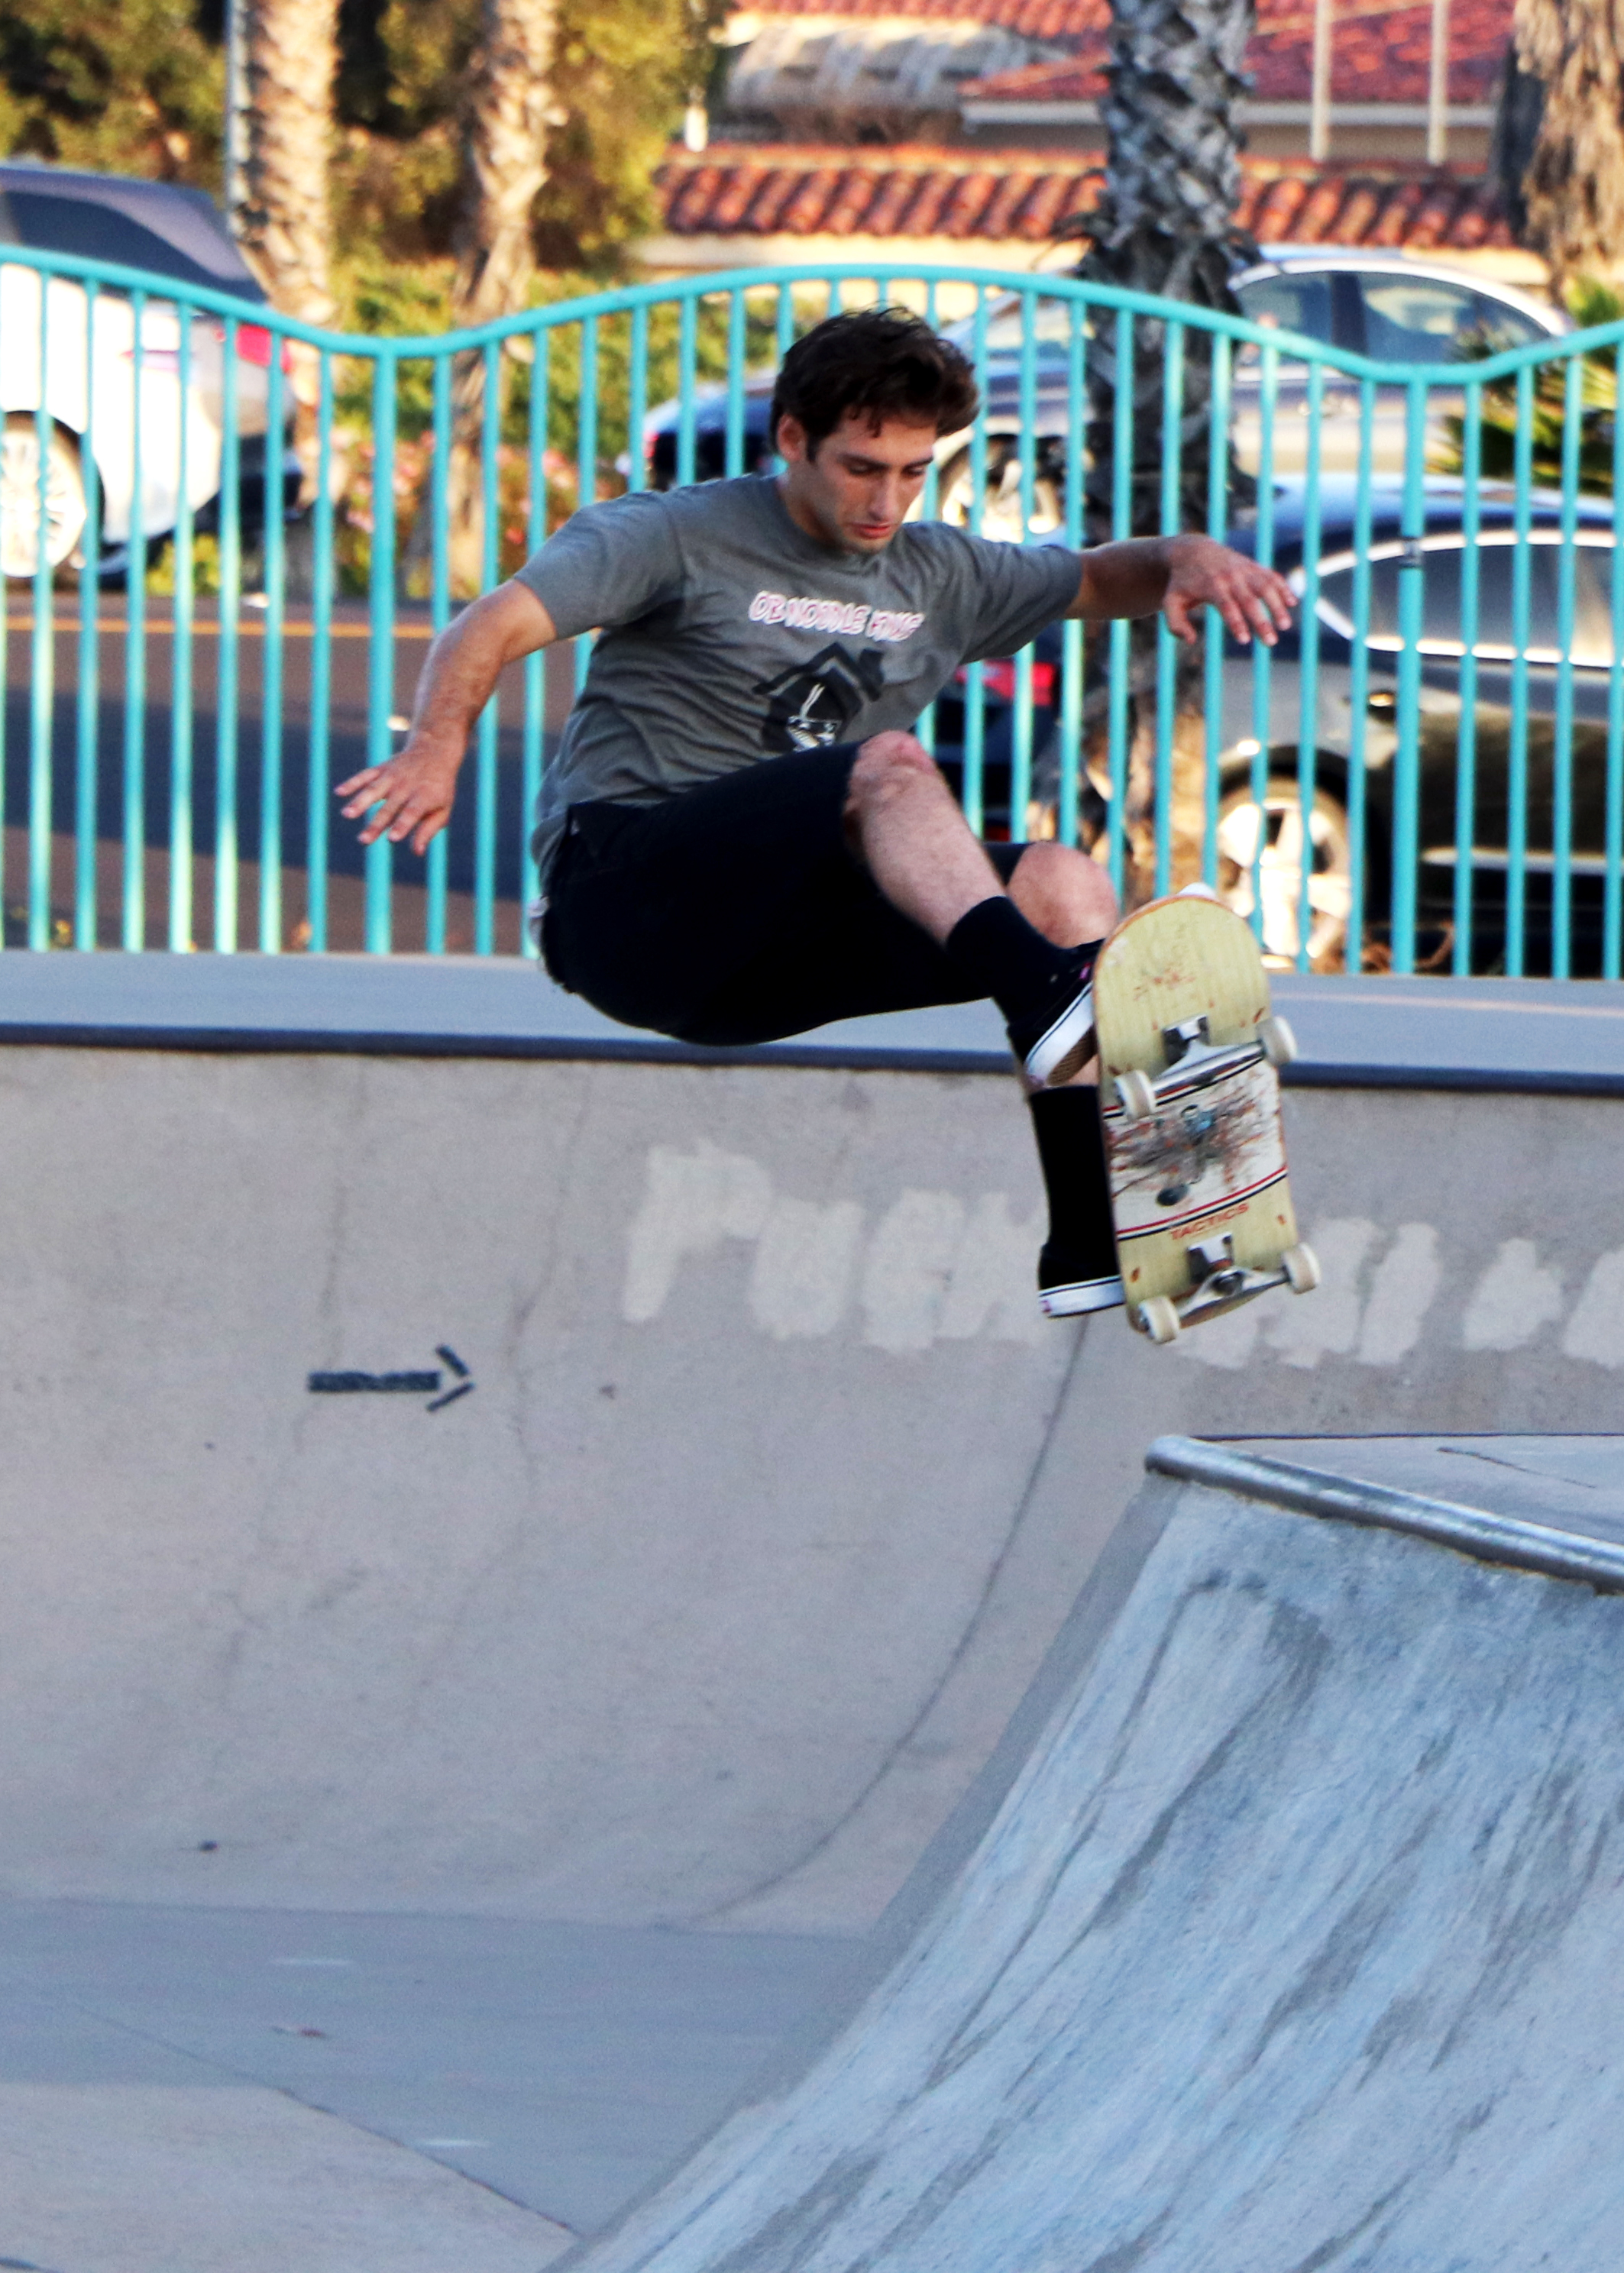 Skateboarder at Robb Field Skate Park in San Diego